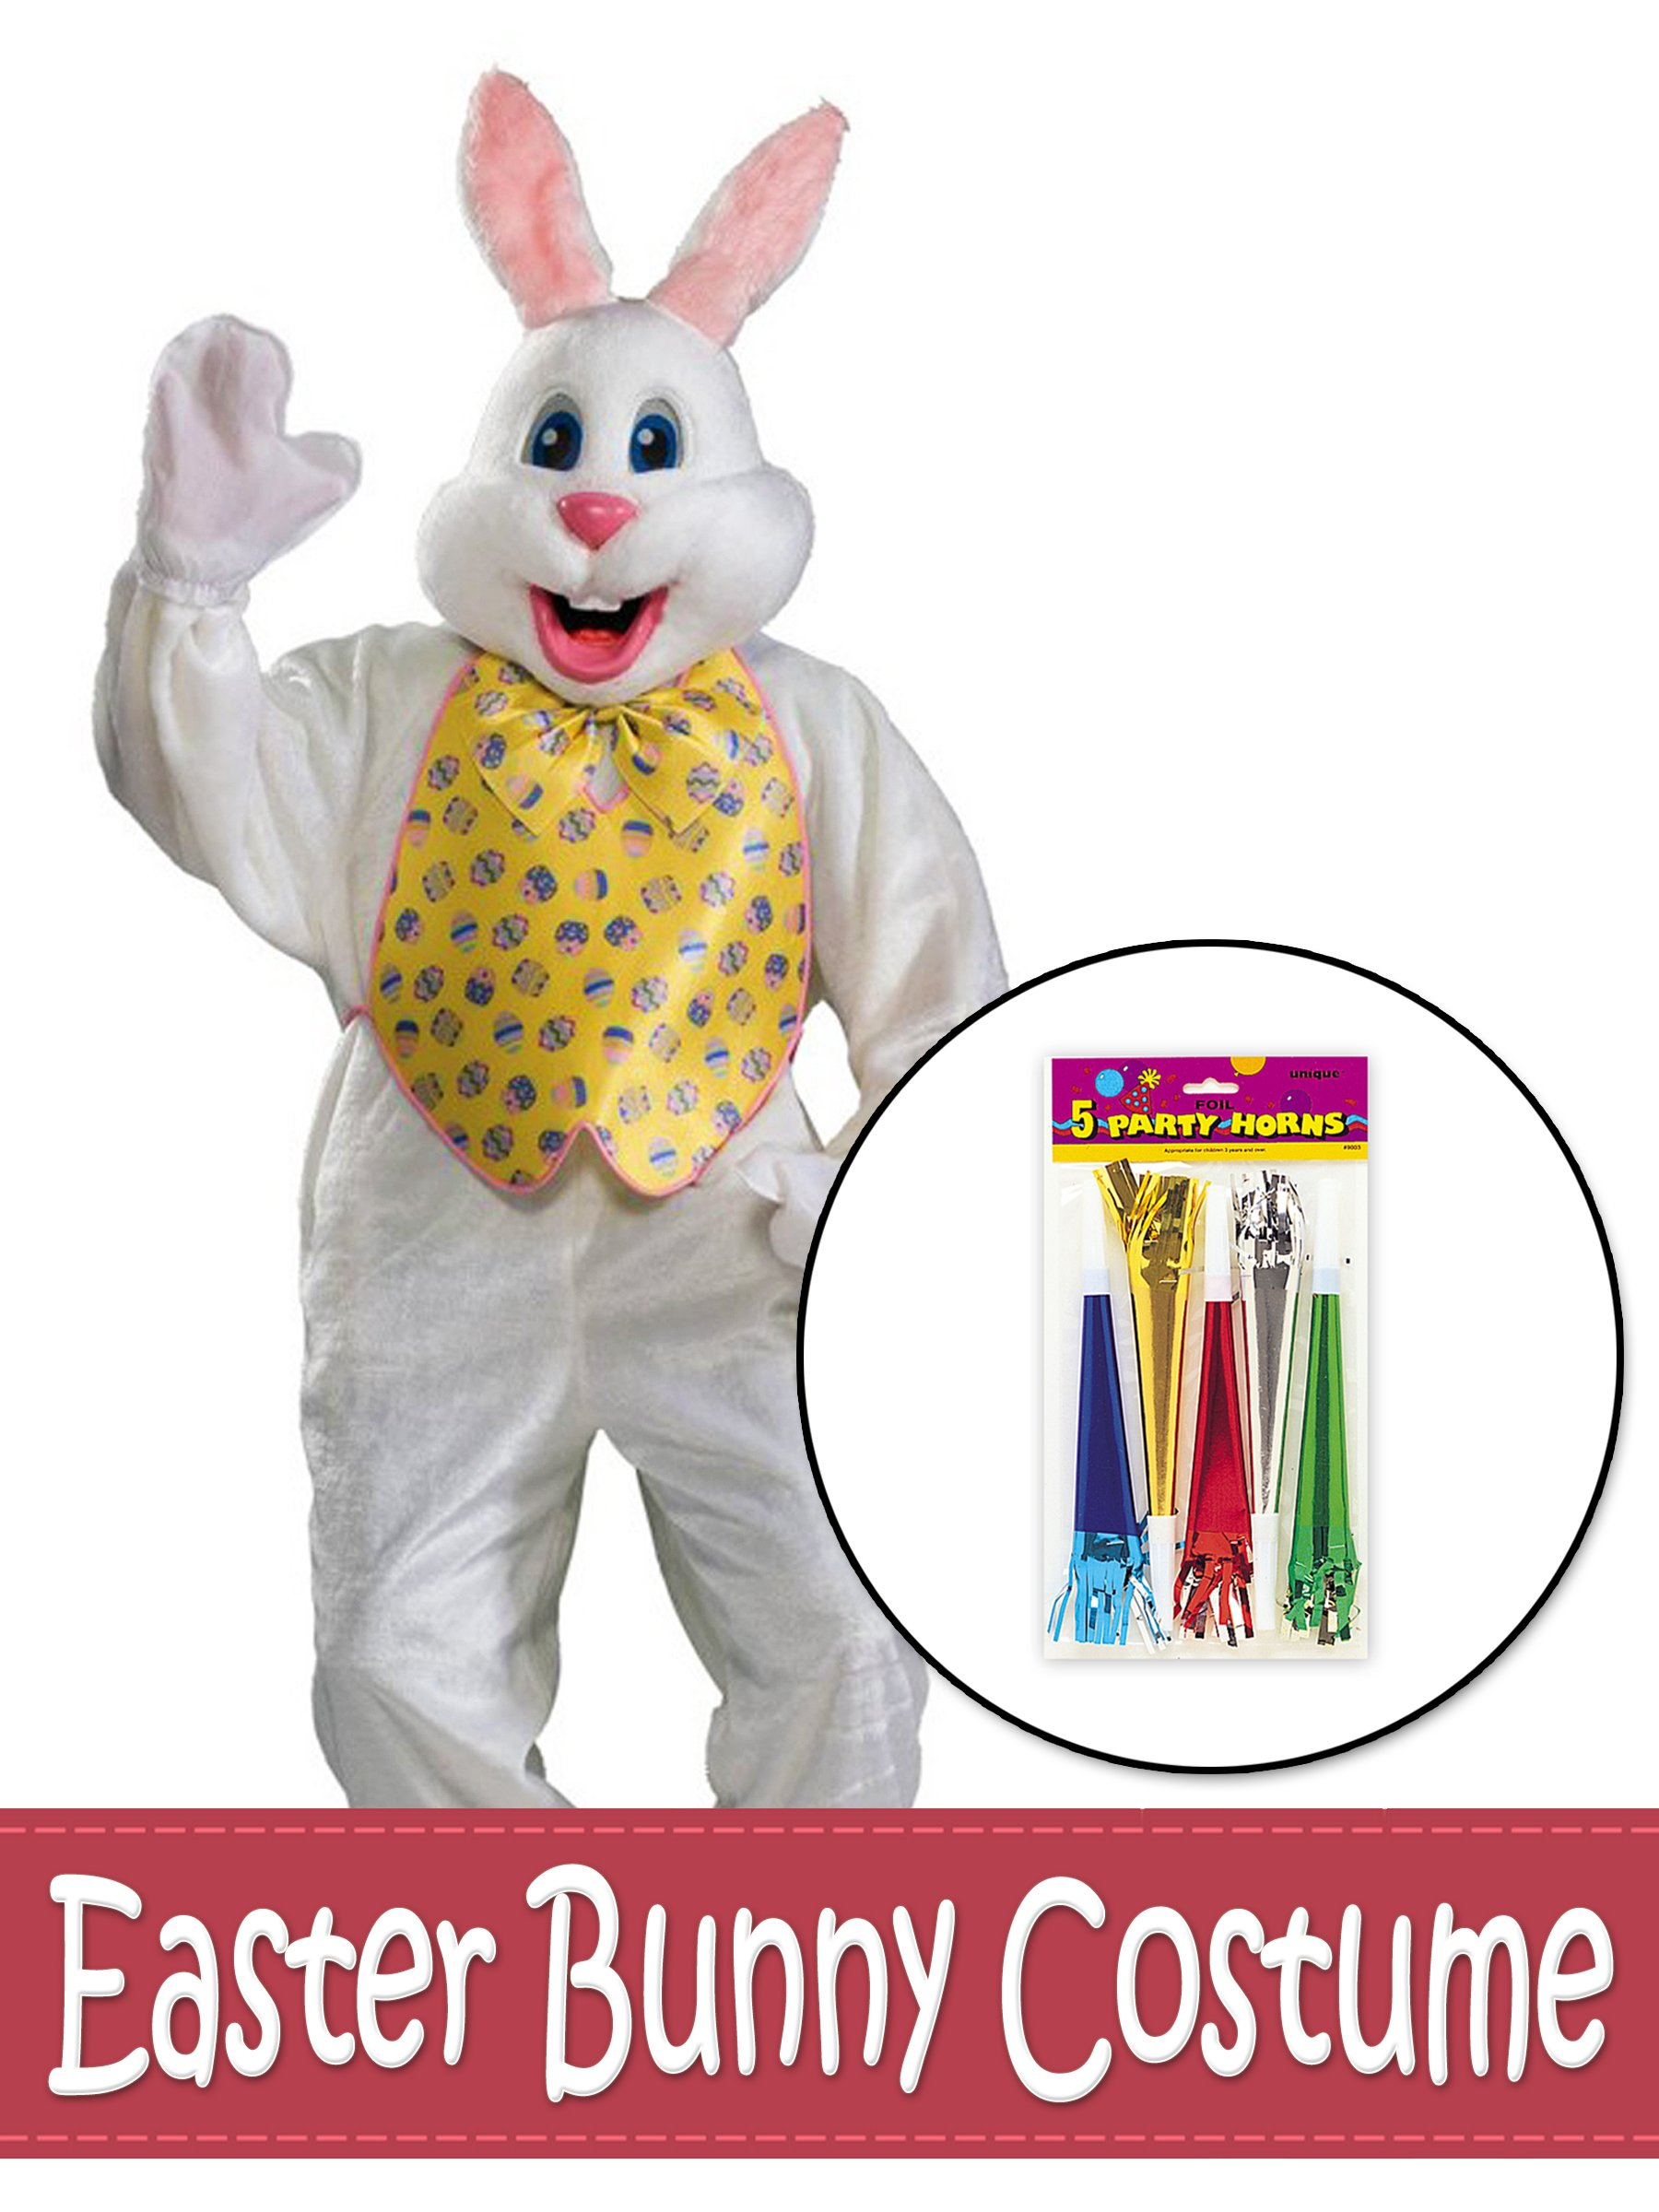 Plus BirthdayExpress Easter Bunny Mascot Costume Kit with Easter Bucket and Candy